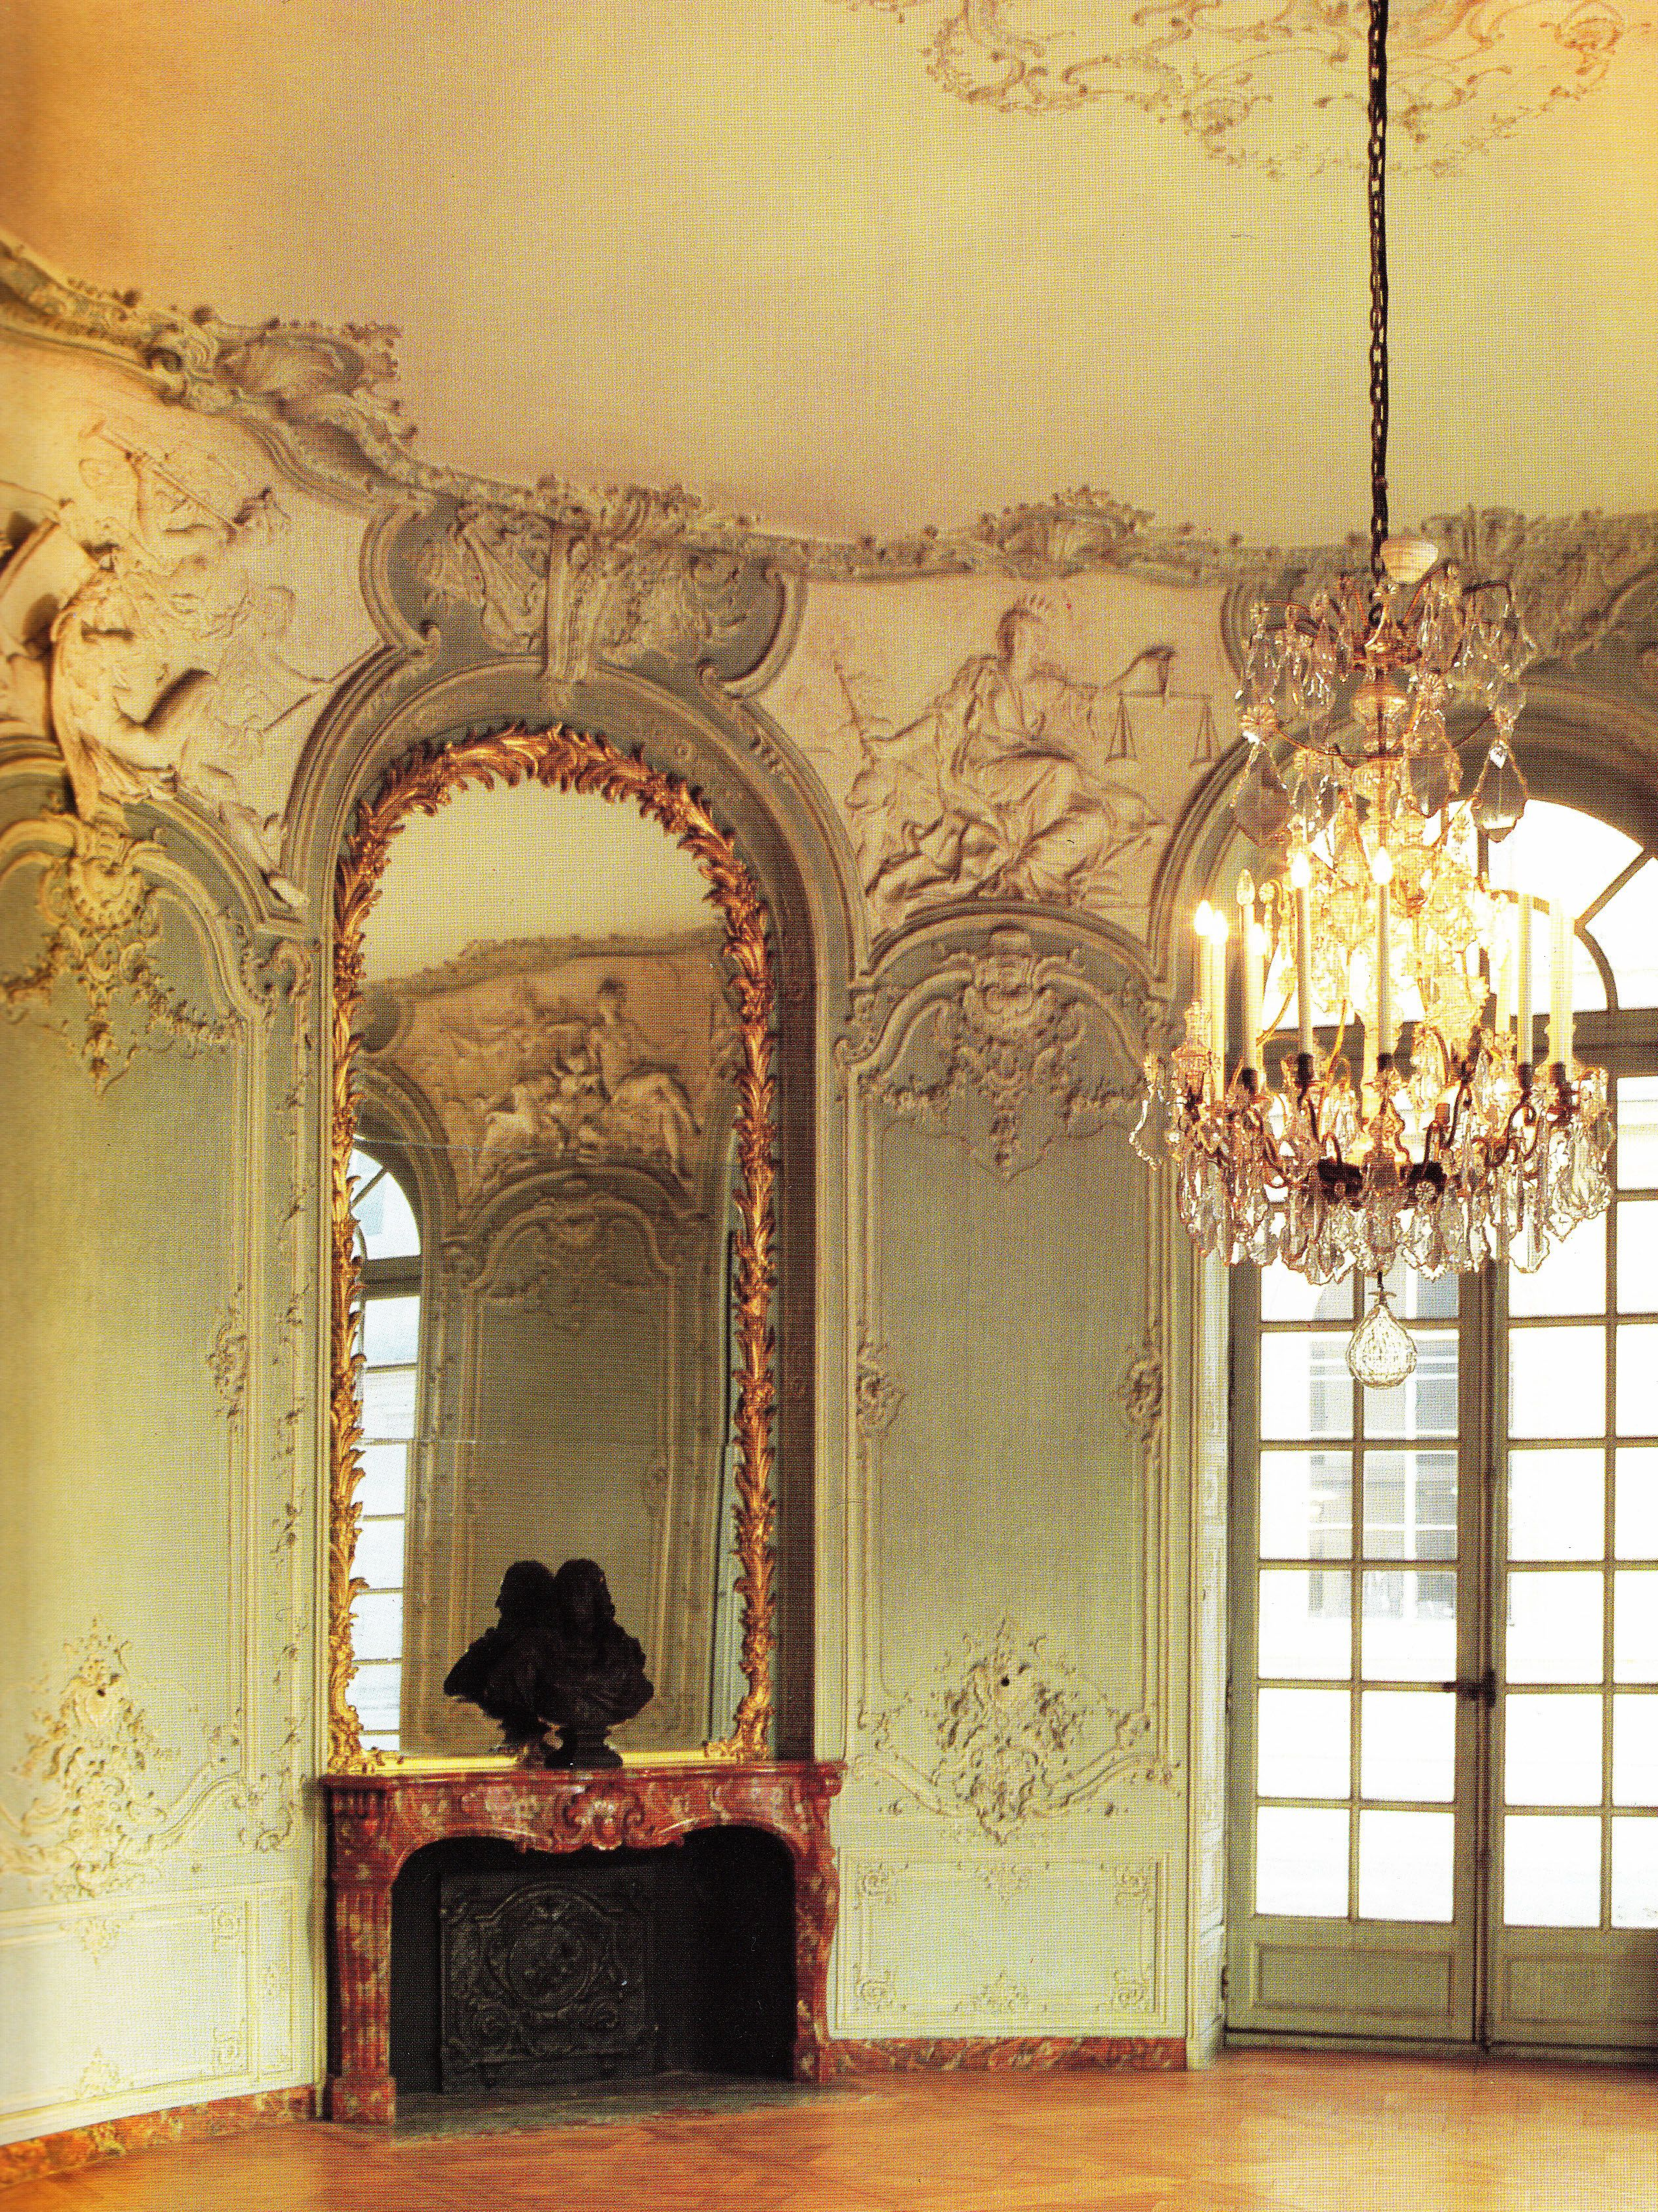 French Interiors Of The Eighteenth Century French Interior Architectural Lighting Interior French Interior Design